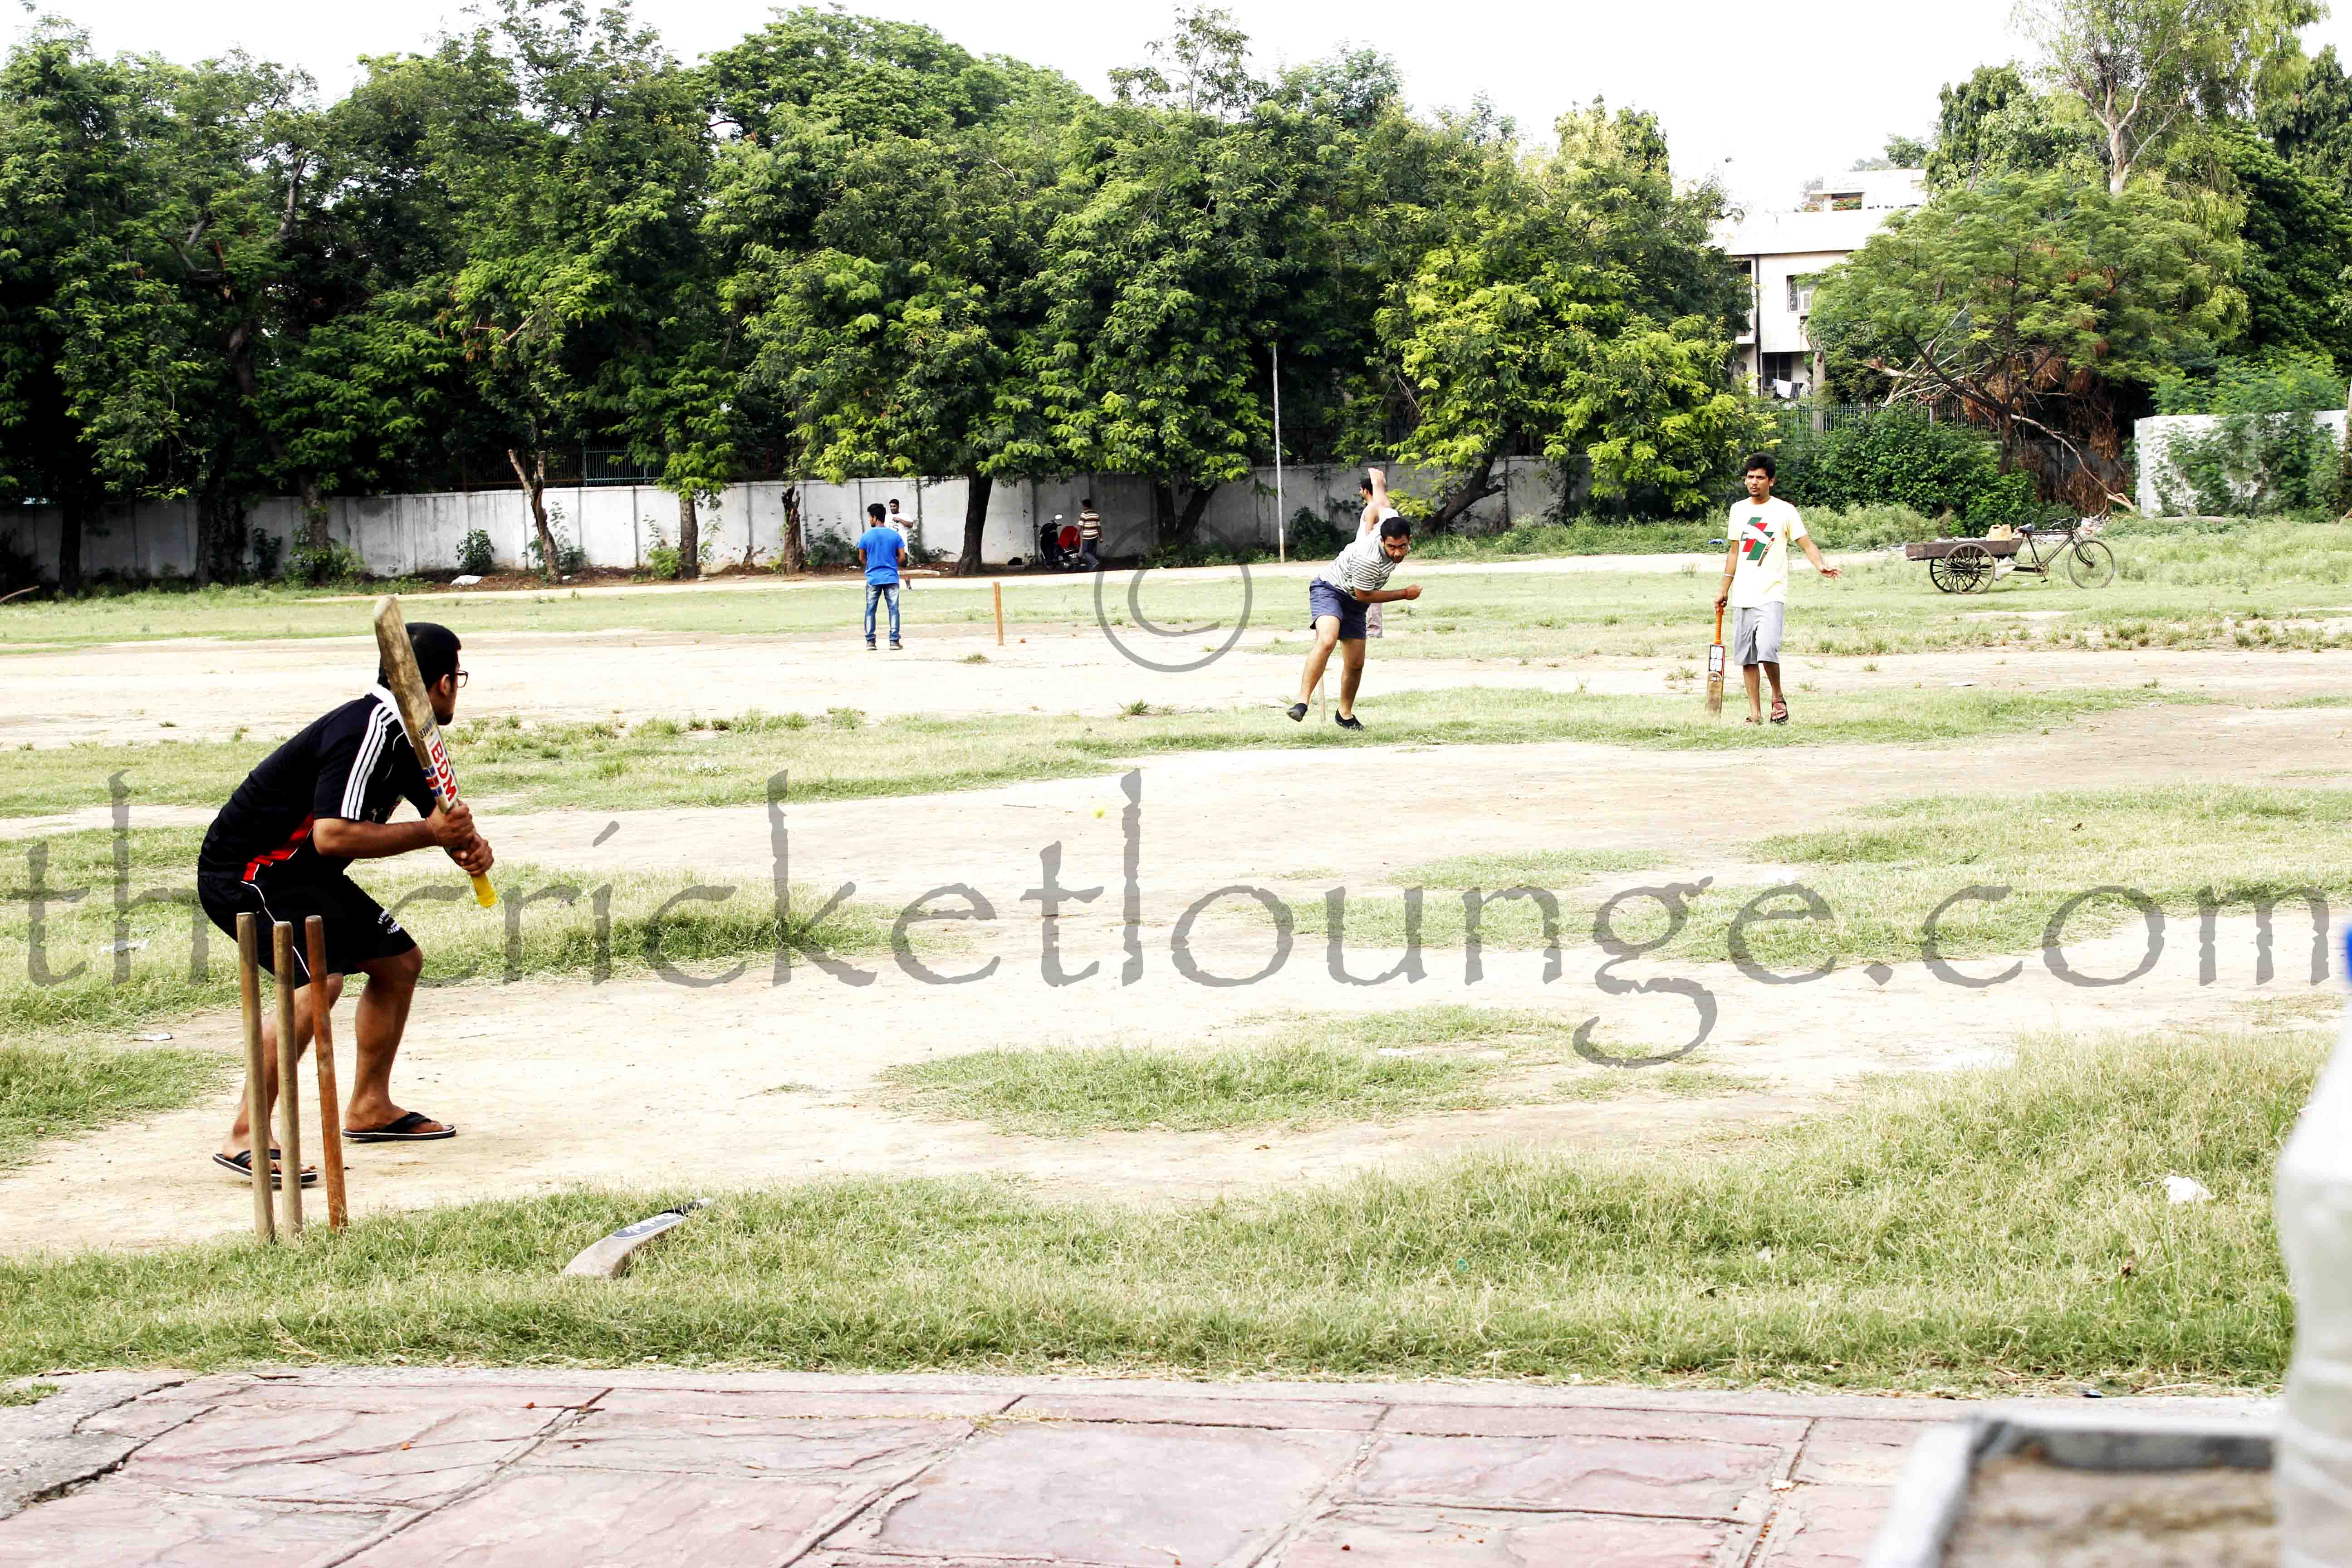 Gully cricket (by thecricketlounge.com)